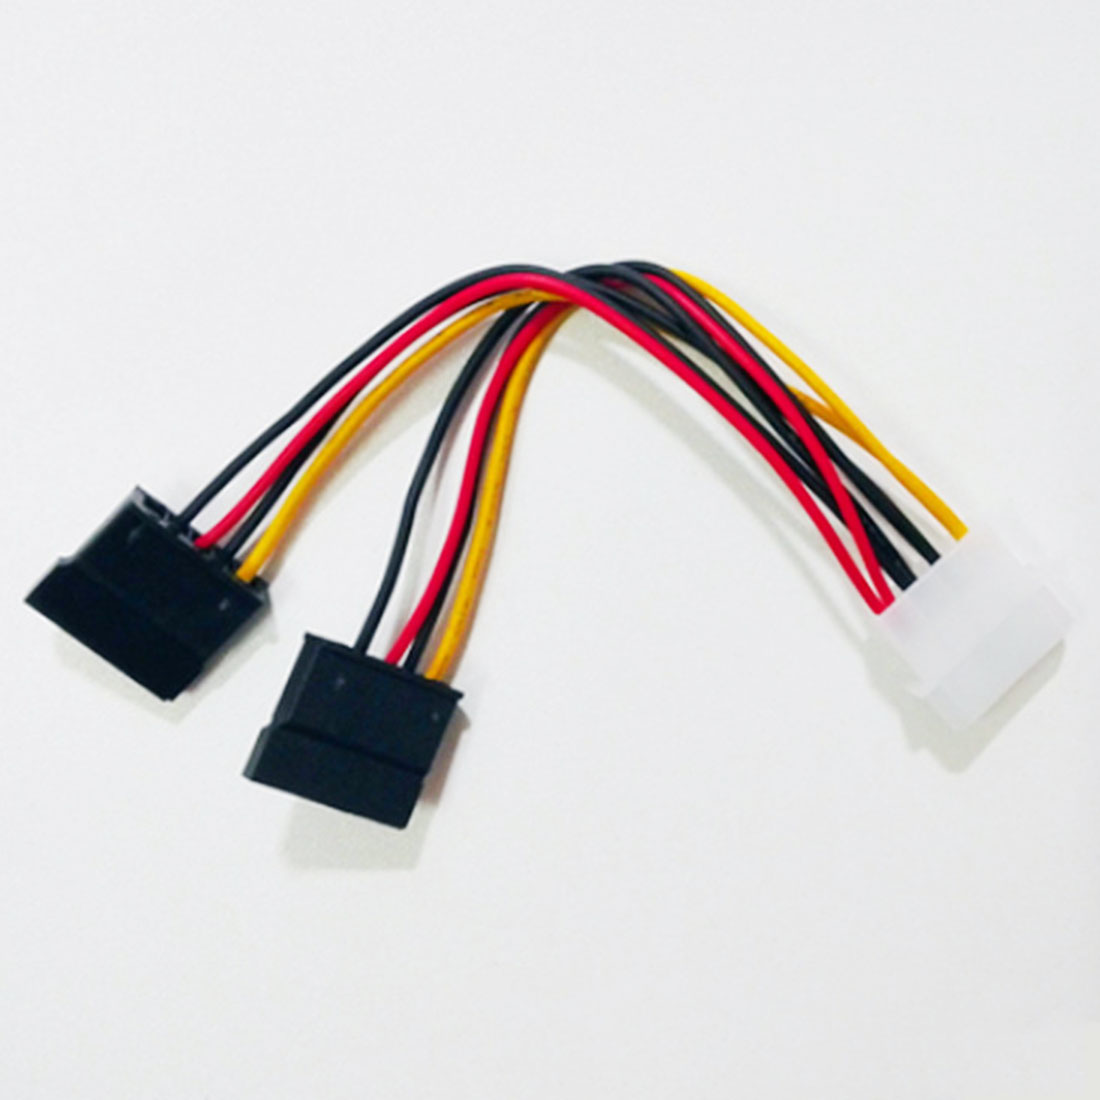 New High Quality 4 Pin IDE Power Splitter 1 Male To 2 Female ATA / SATA Power Cable Y Splitter Hard Drive Power Supply Cables